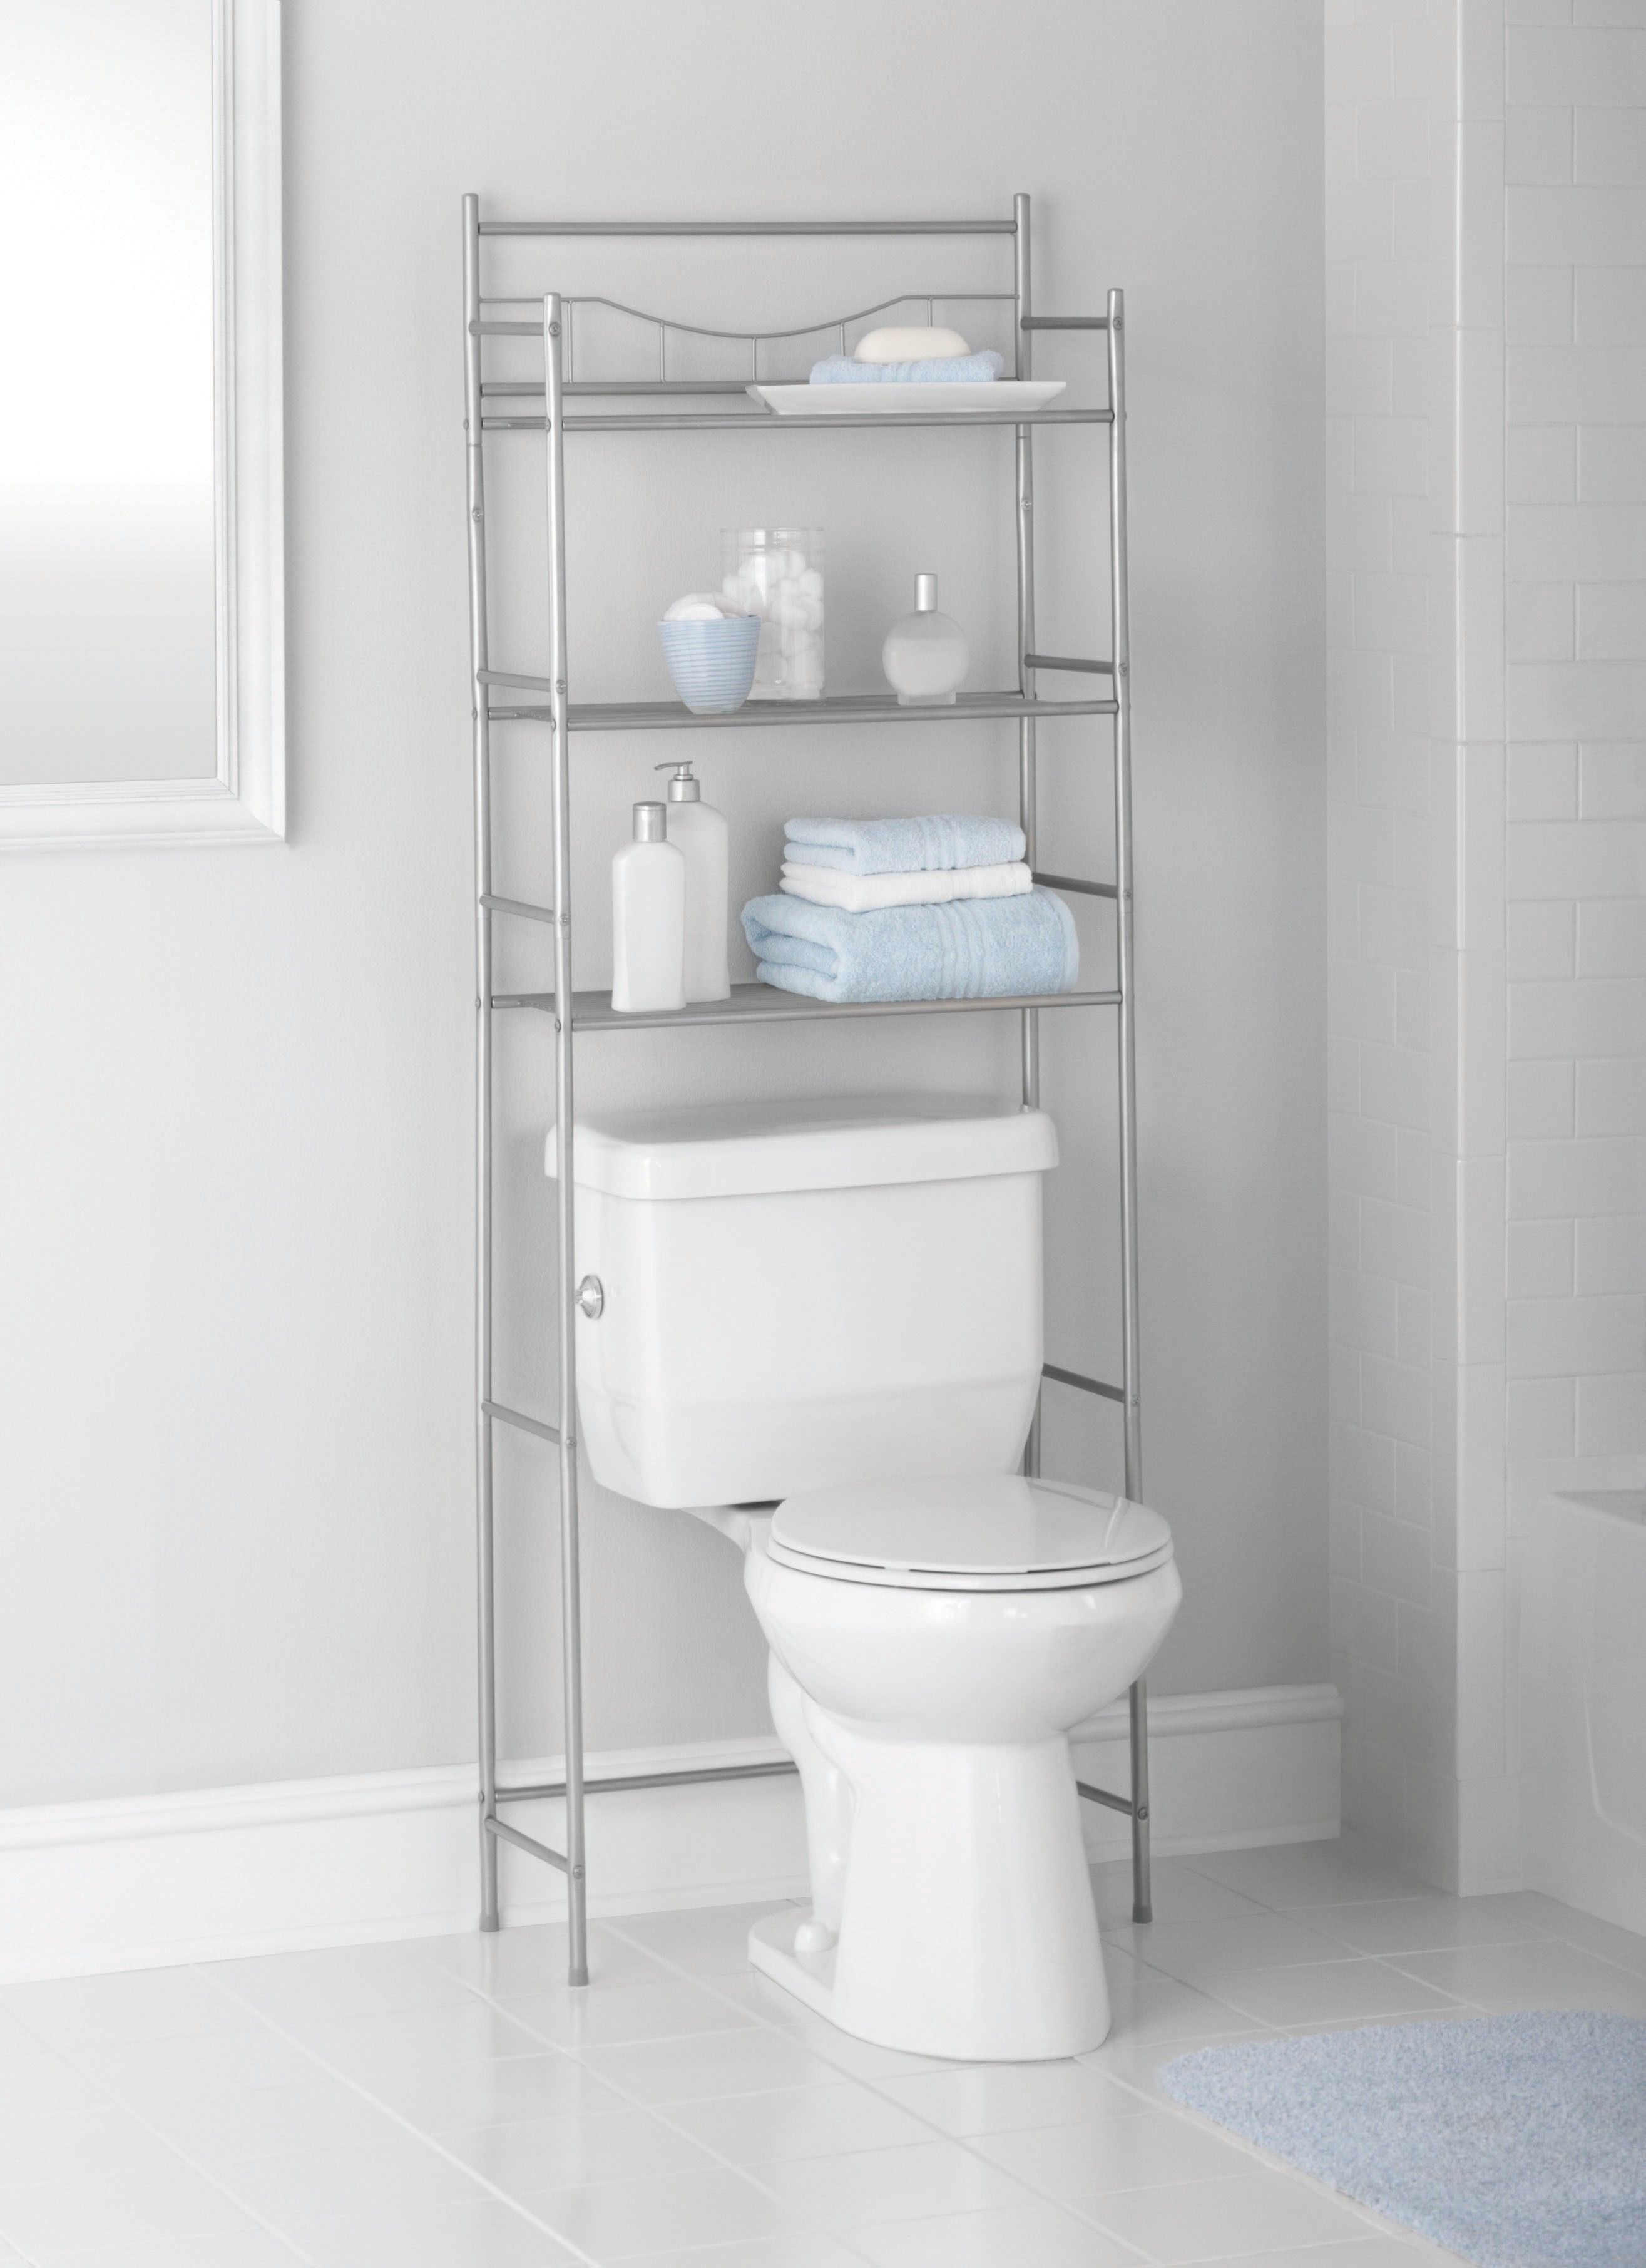 Mainstays 3 Shelf Bathroom Over The Toilet Space Saver With Liner Satin Nickel Walmart Com Bathroom Space Saver Bathroom Storage Shelves Bathroom Space